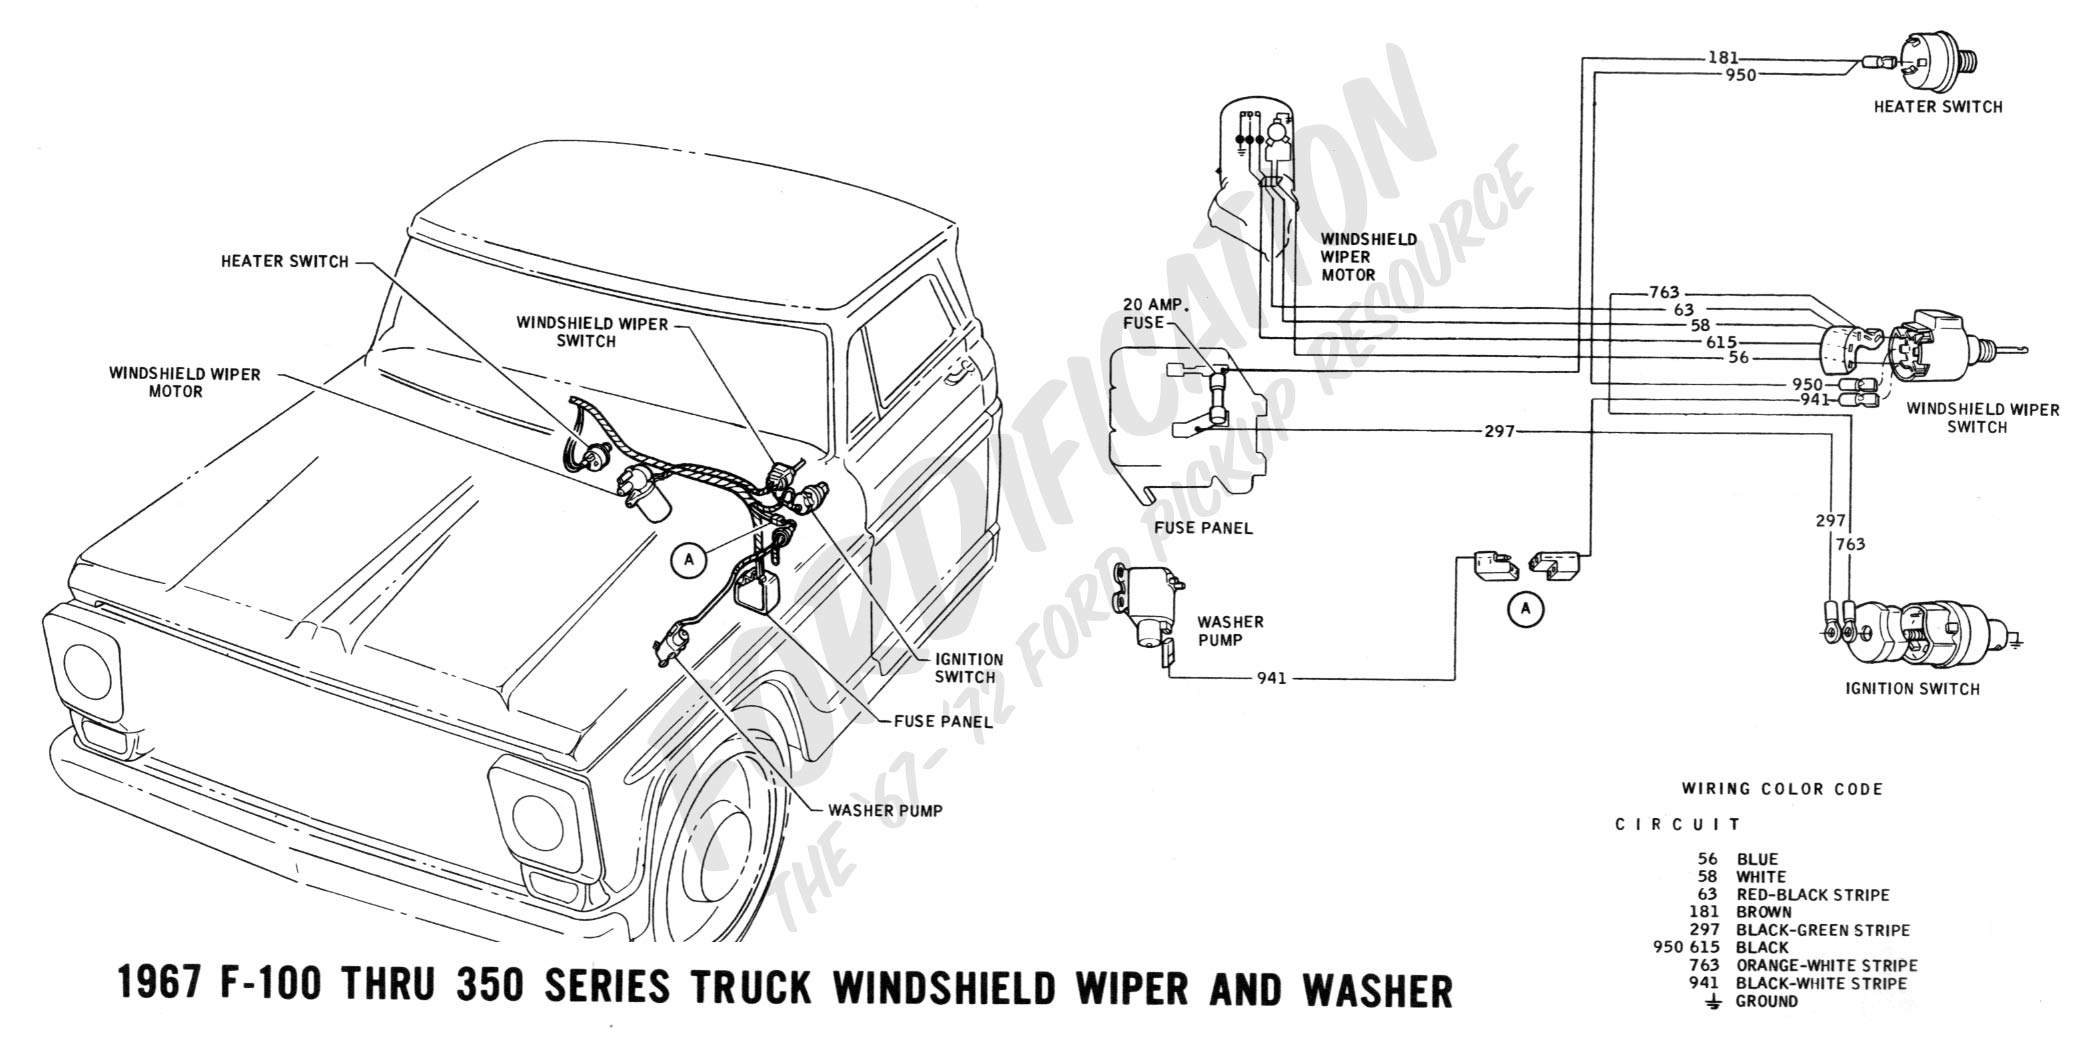 Fabulous 1966 Ford F100 Wiring Schematic Wiring Diagram Tutorial Renstra Mohammedshrine Wiring Digital Resources Renstramohammedshrineorg